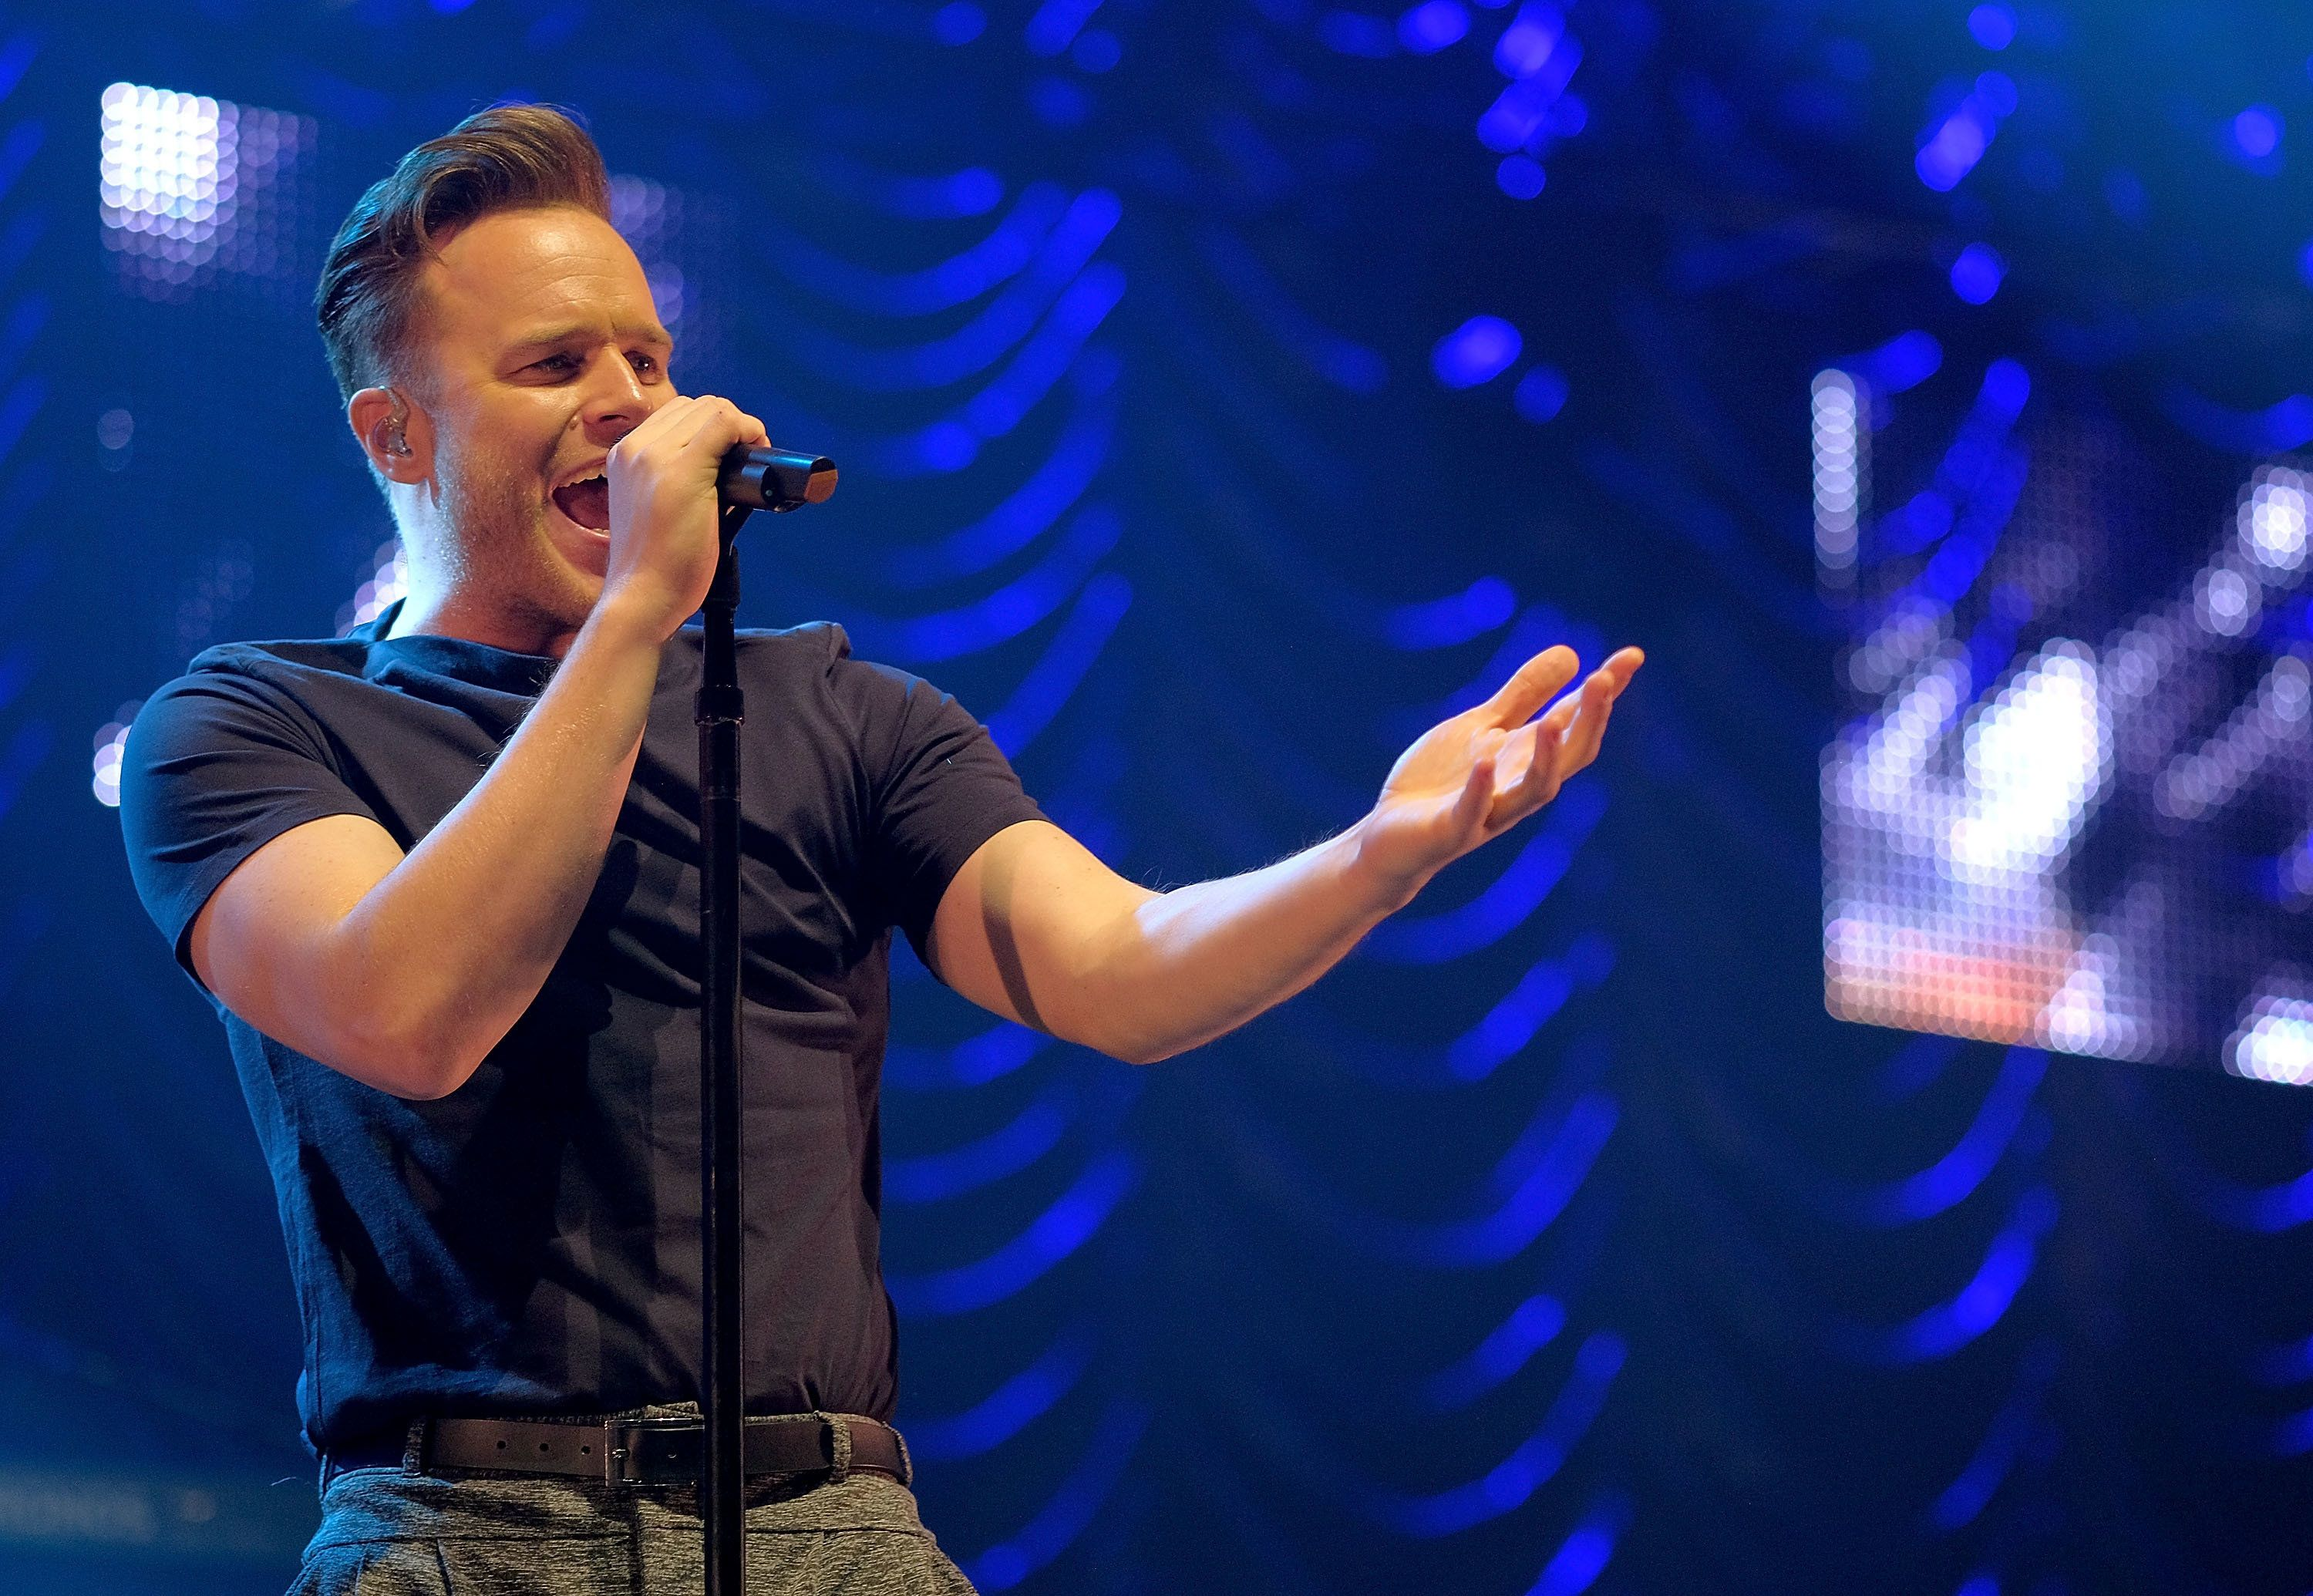 Olly Murs 'Pulls Out Of Brits Party Performance' After